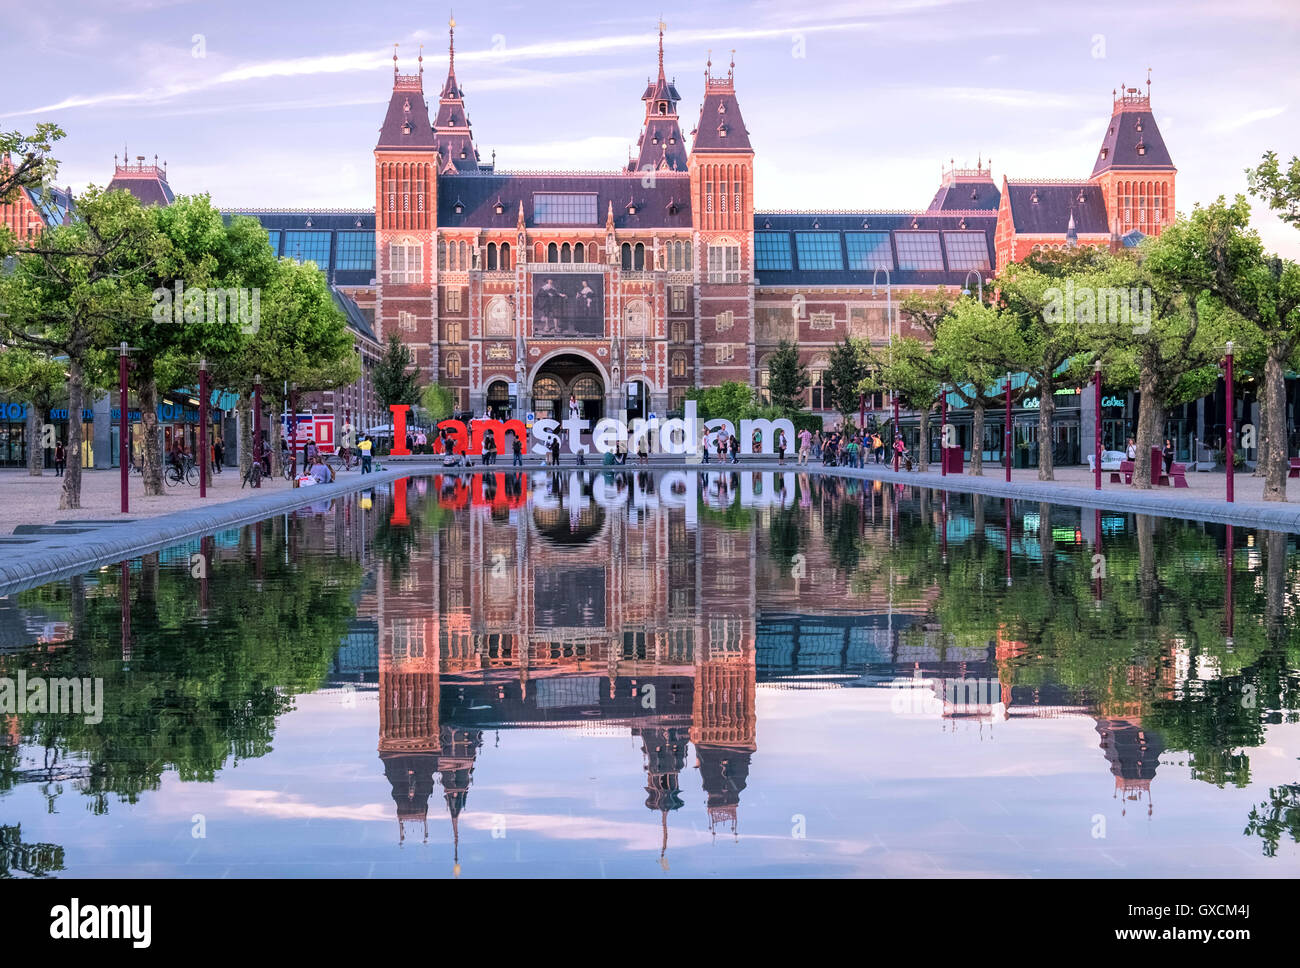 Rijks Museum building at 'I Am Amsterdam' in early evening light, Museum Quarter, Amsterdam, Netherlands Stock Photo